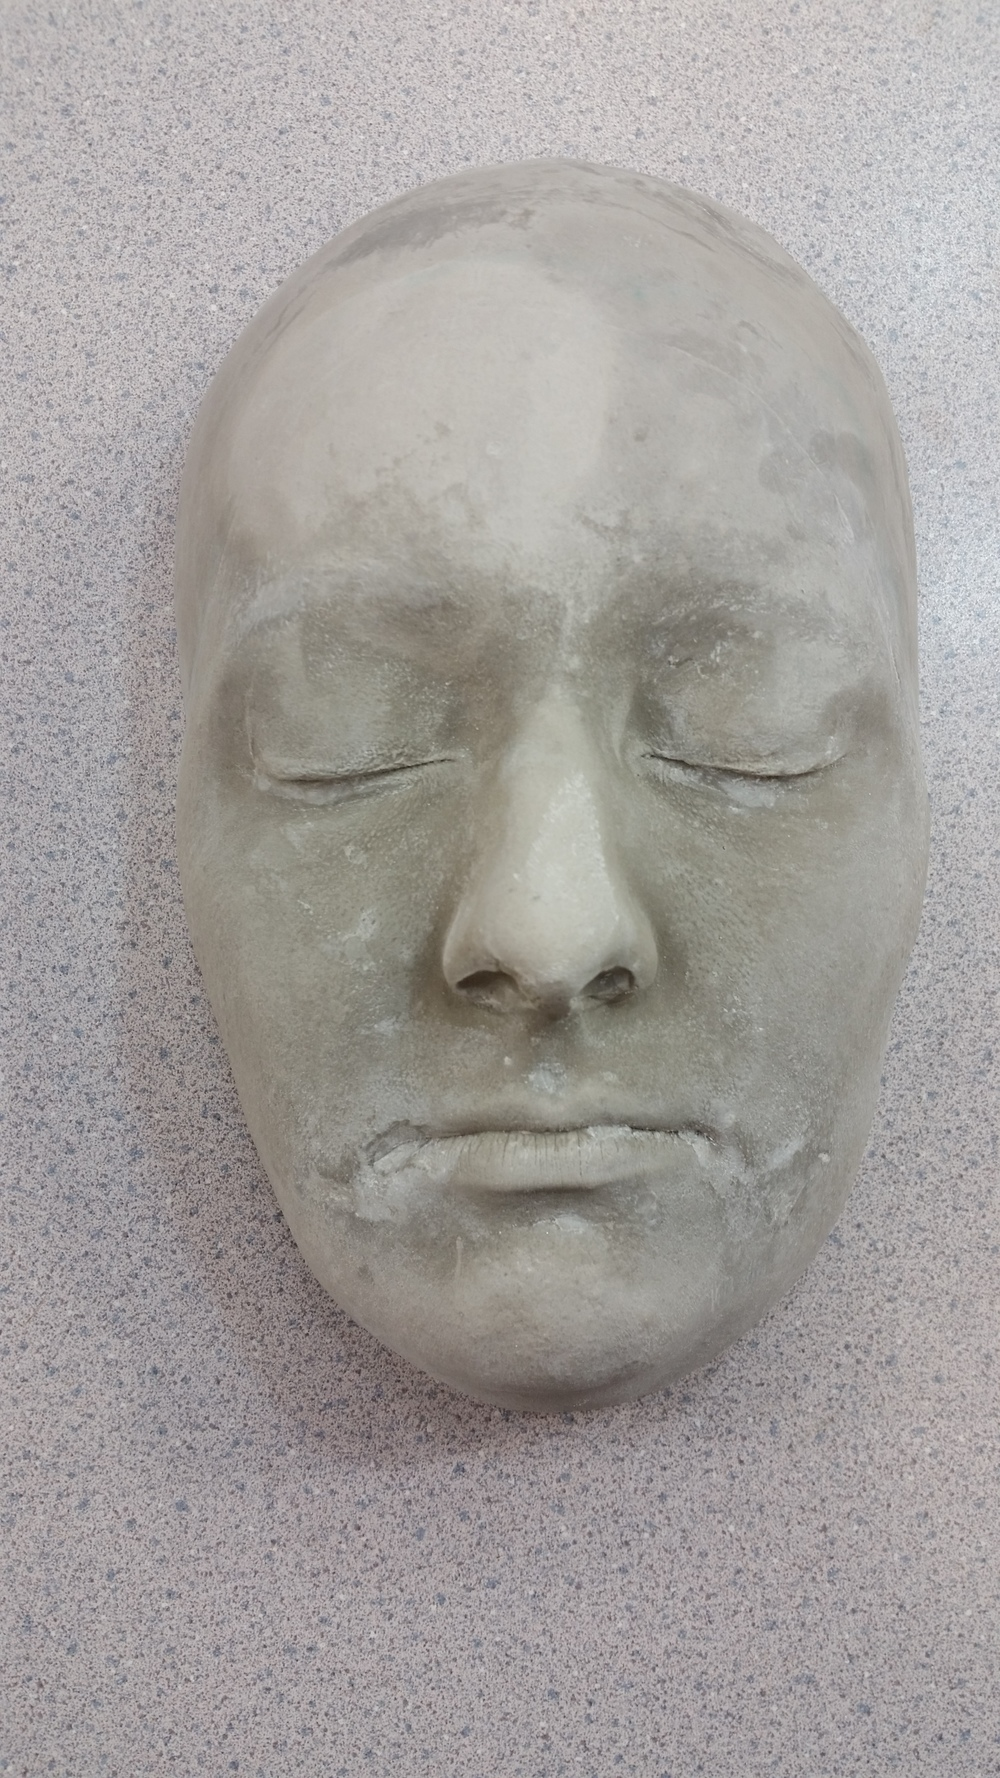 face cast ready for oil based clay molding